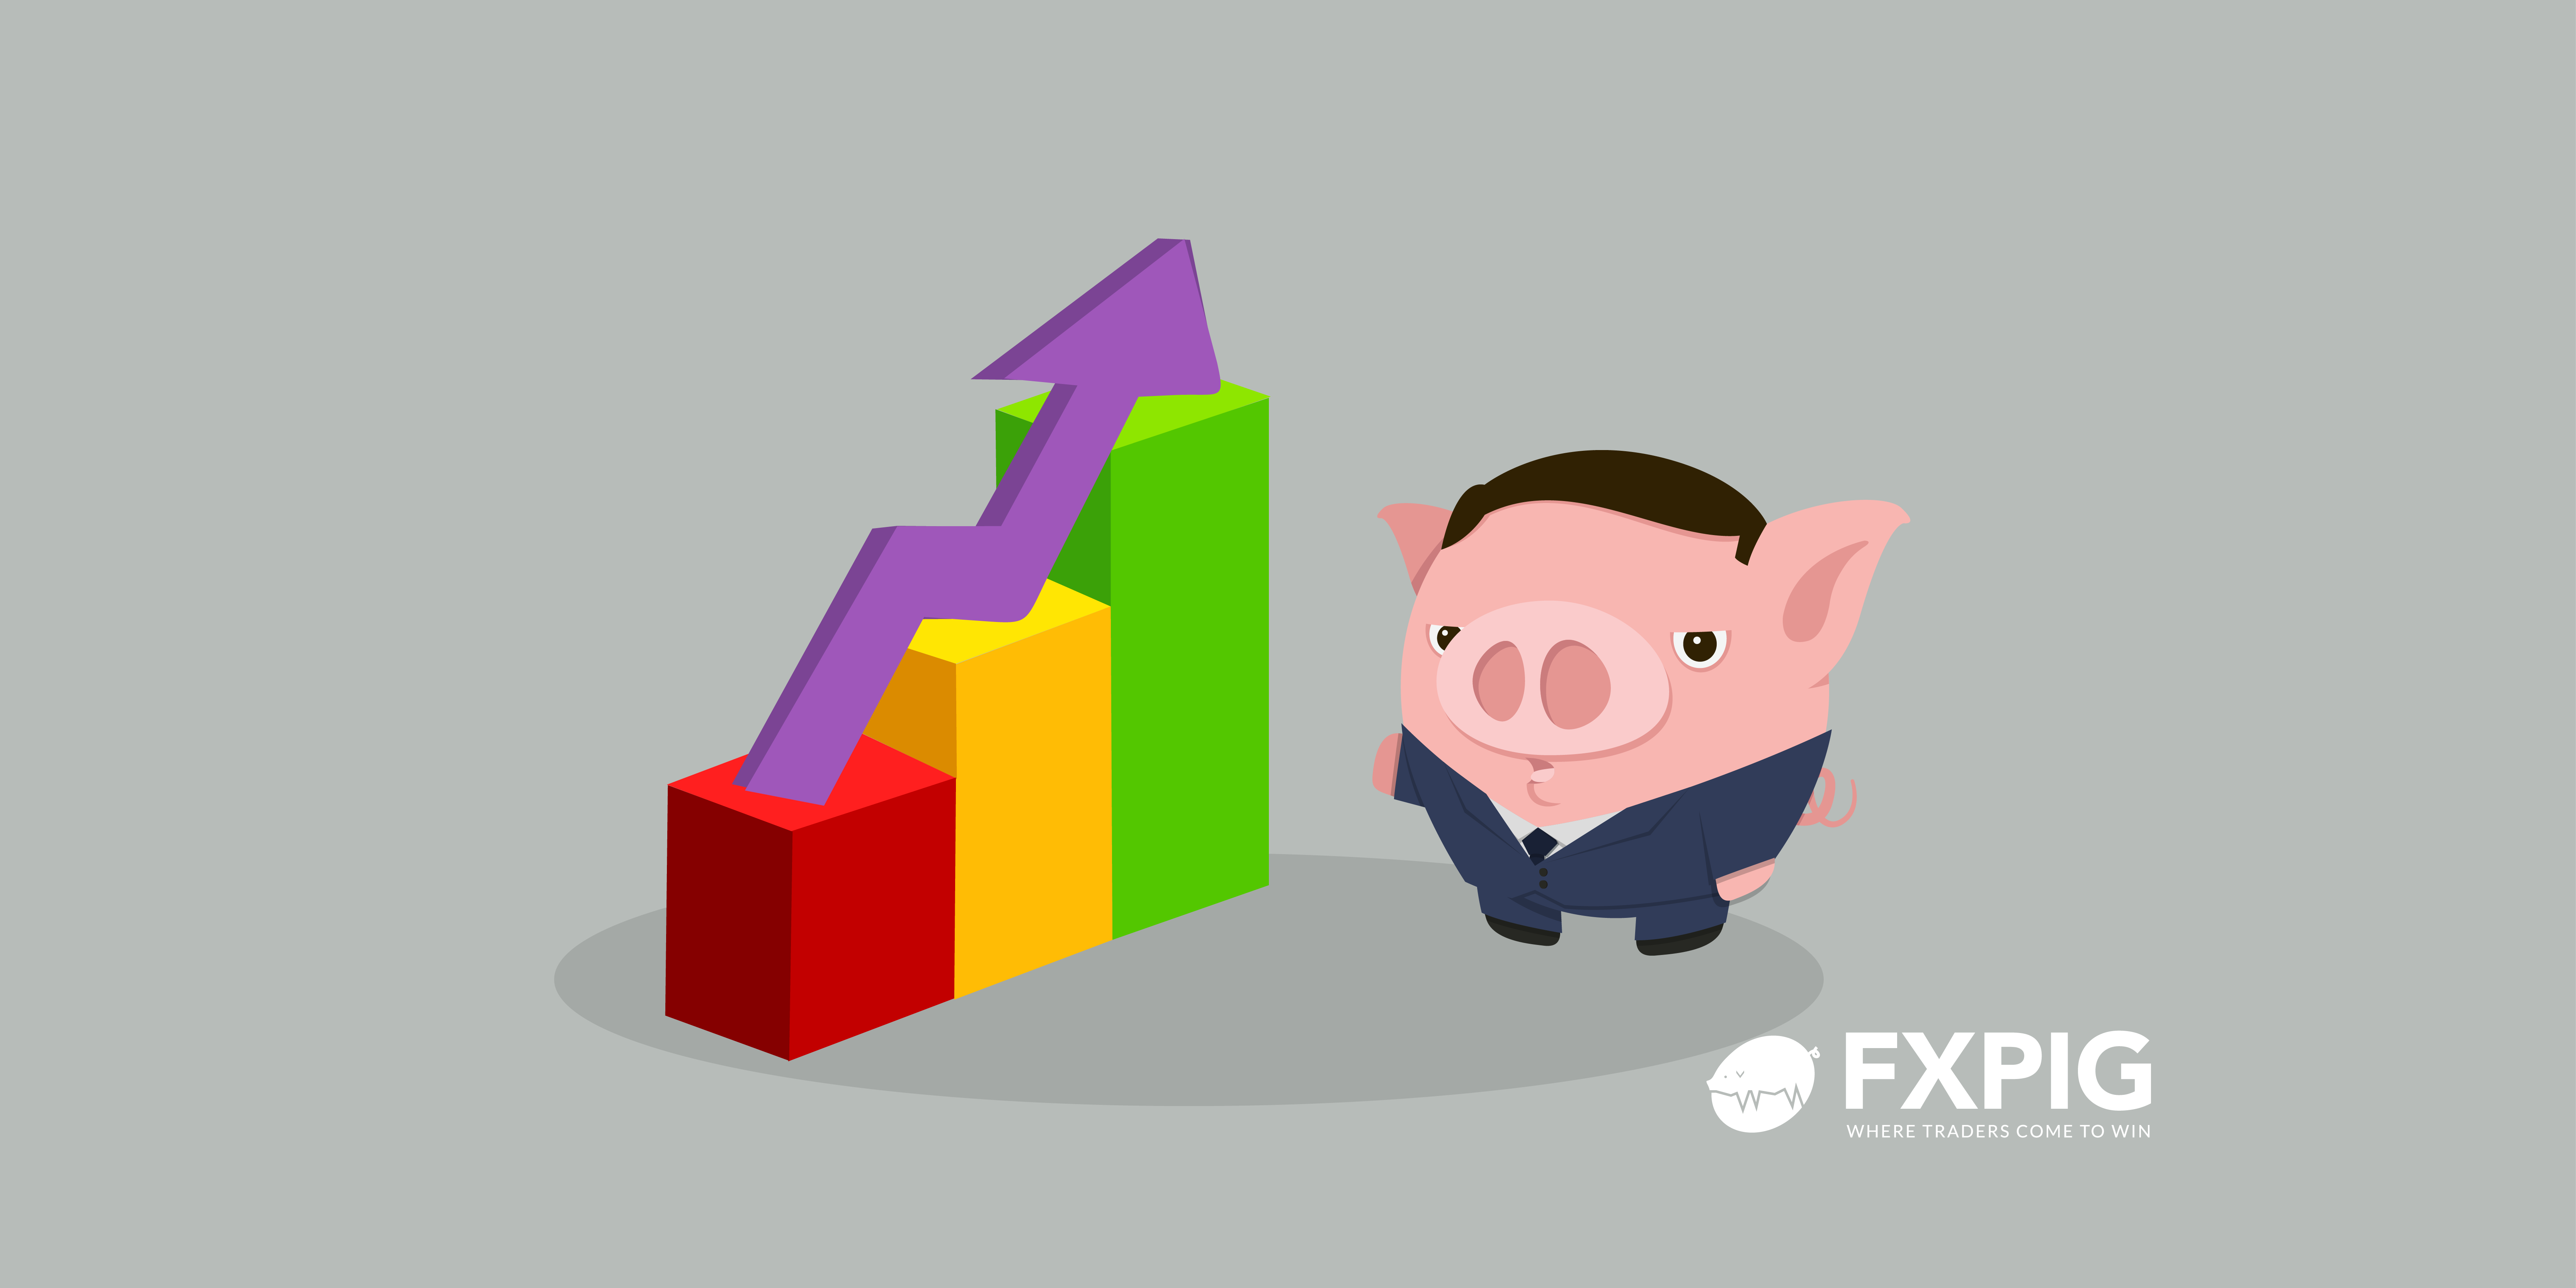 US_NFP_Incresing_FOREX_FXPIG